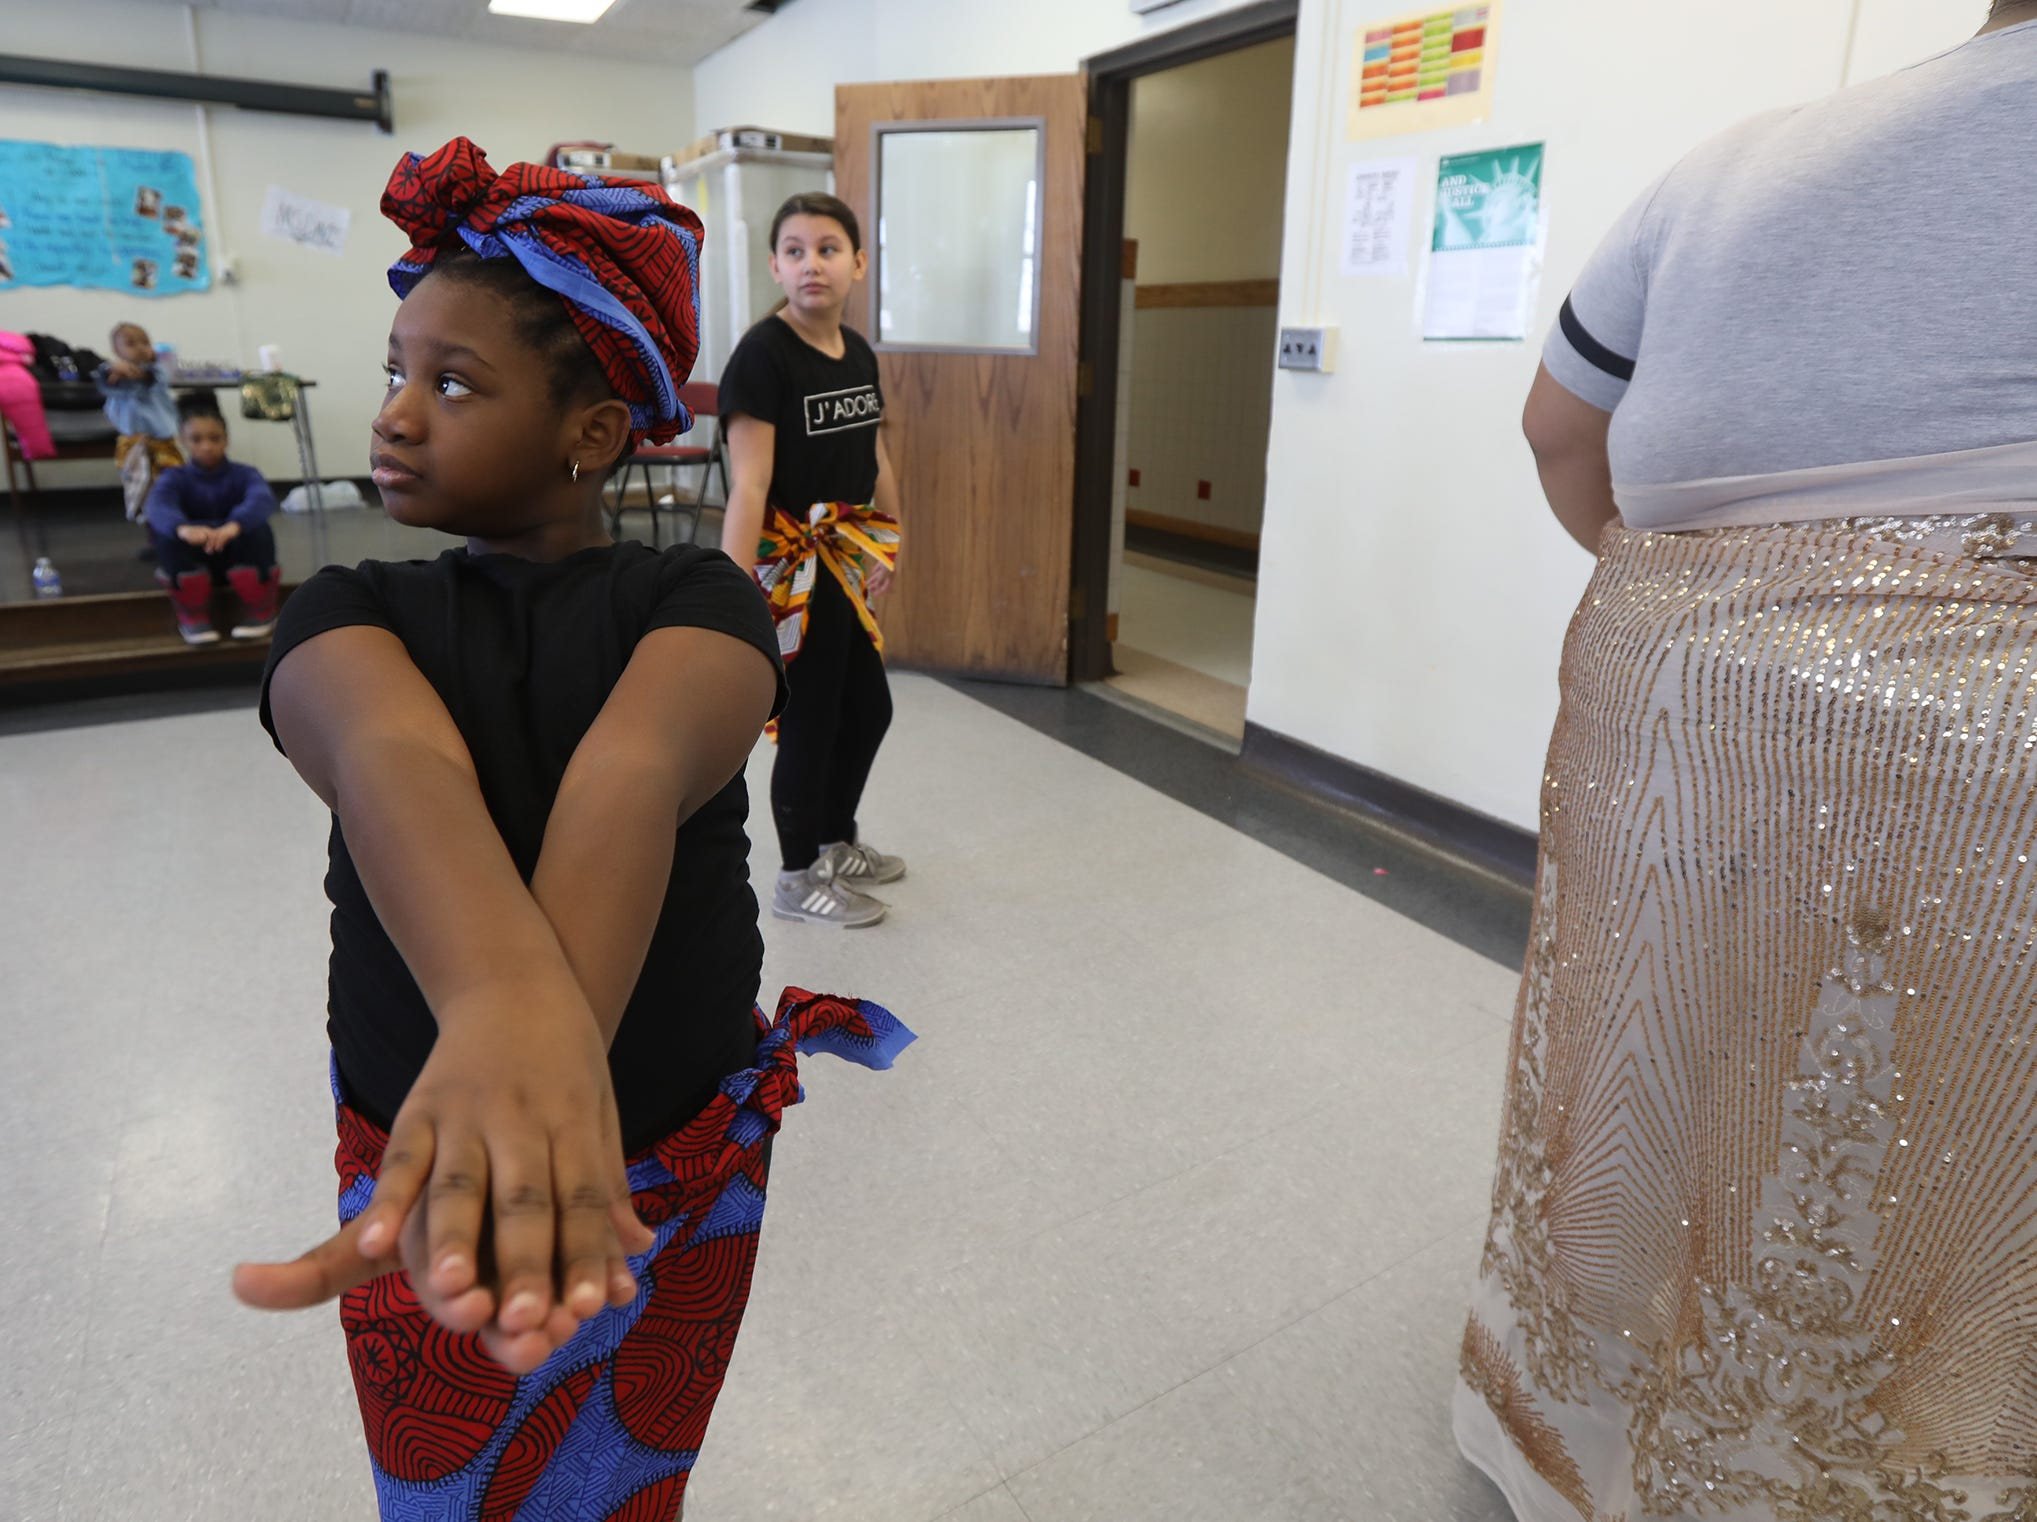 Dorie Lewis looks up at one of the adults who was reminding her about the opening moves during dance practice for Black History Month celebration at RISE Community School.  Several girls came in during February break to practice for the end of the month performance.